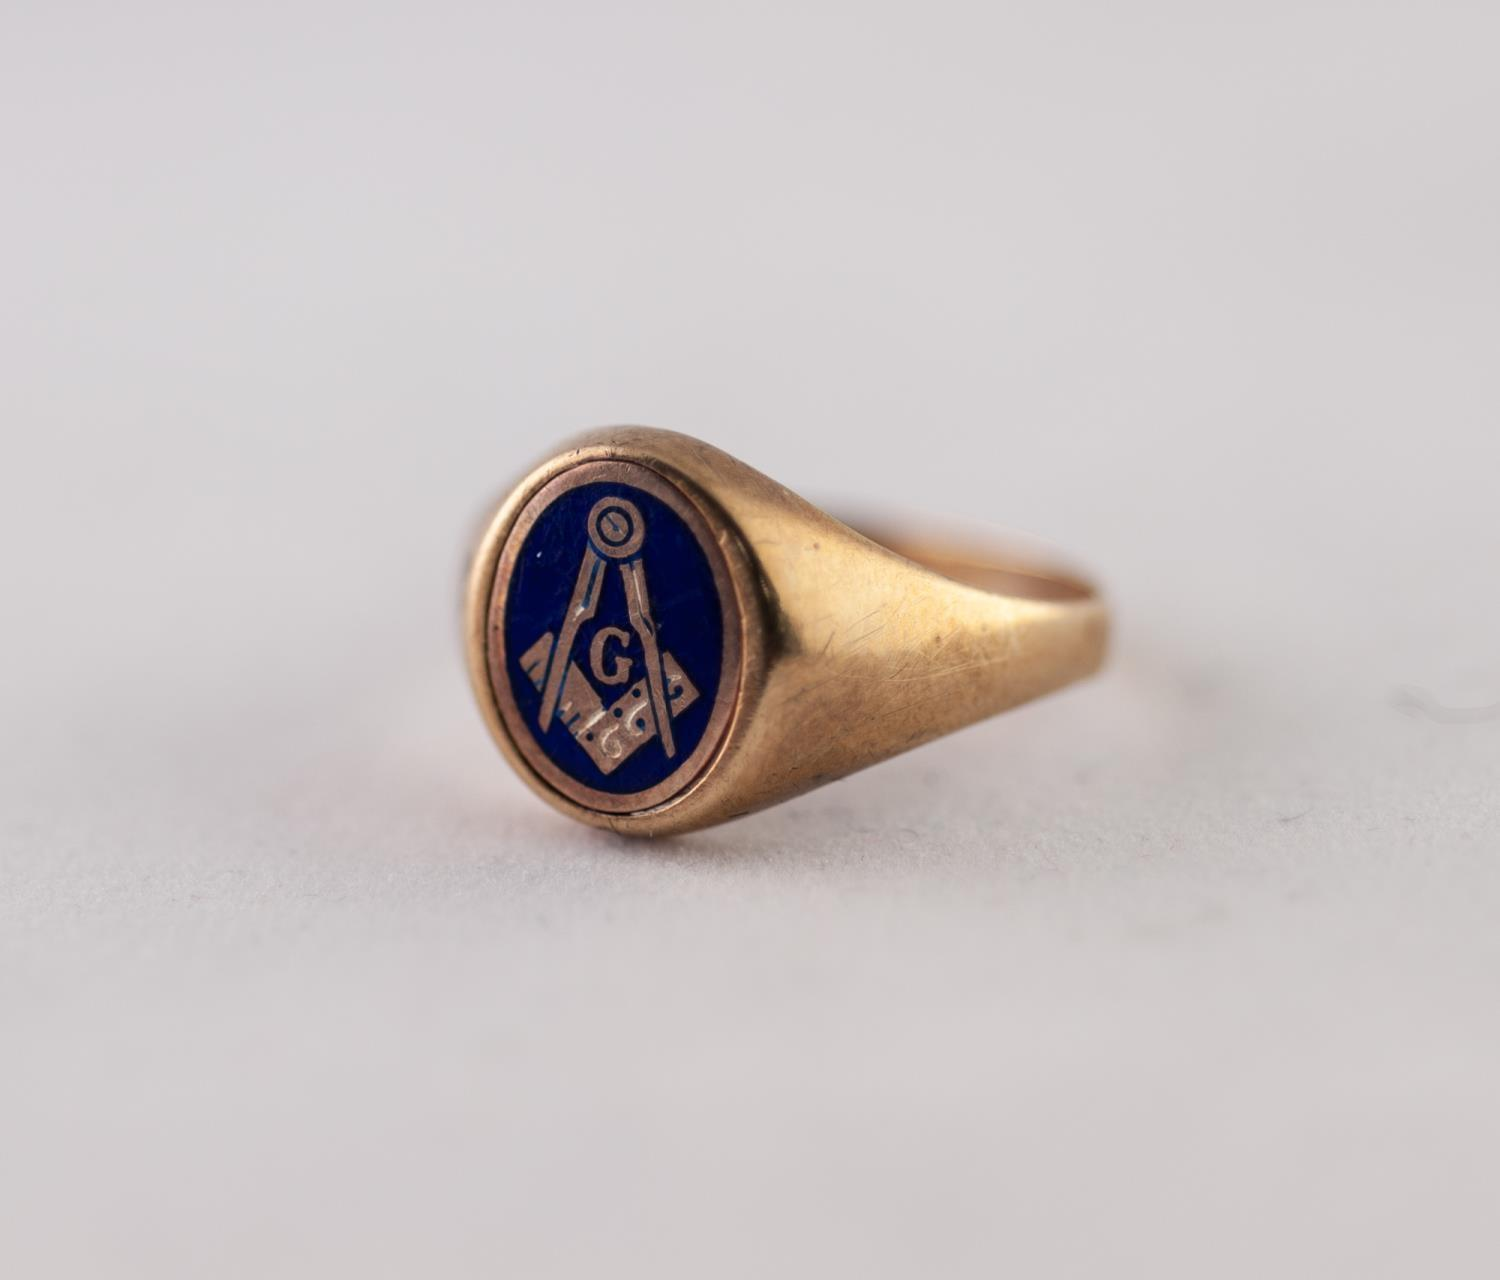 Lot 222 - 9ct GOLD MASONIC SIGNET RING. With enamelled Masonic motif, ring size S1/2, 4.12g